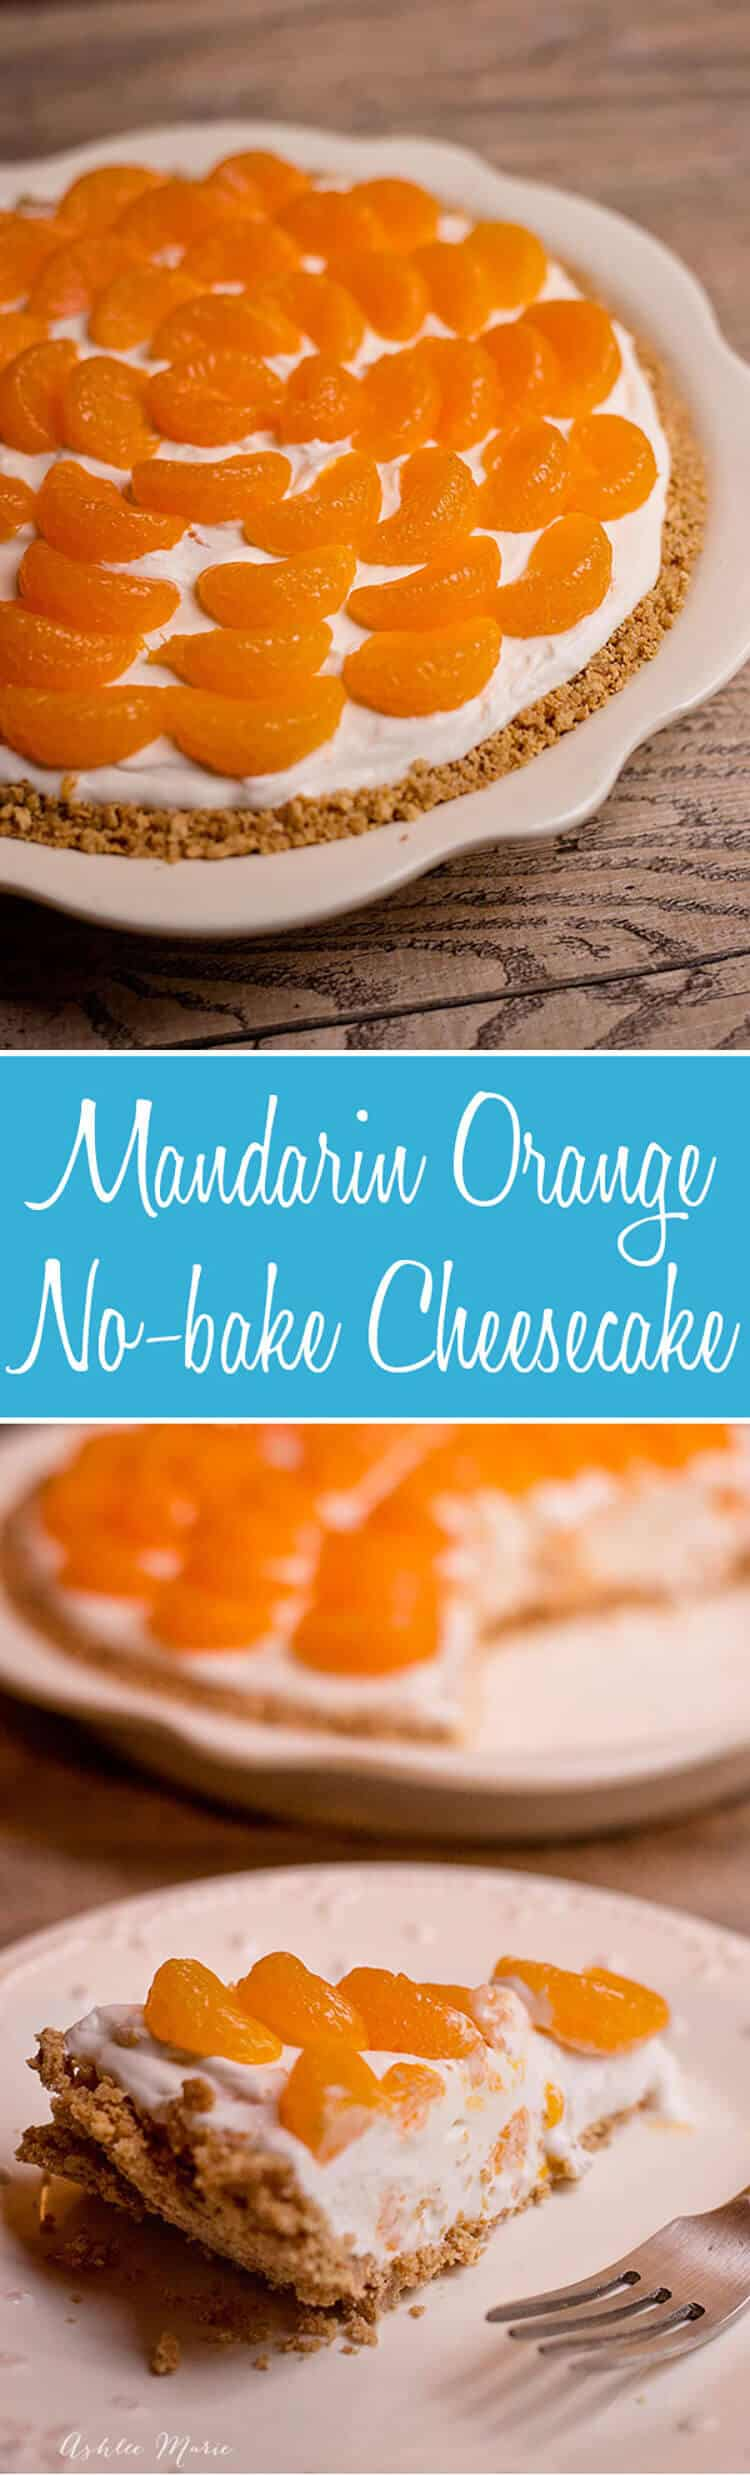 No bake cheesecake is easy to make and tastes amazing, adding mandarin oranges is a sweet addition that makes it even better